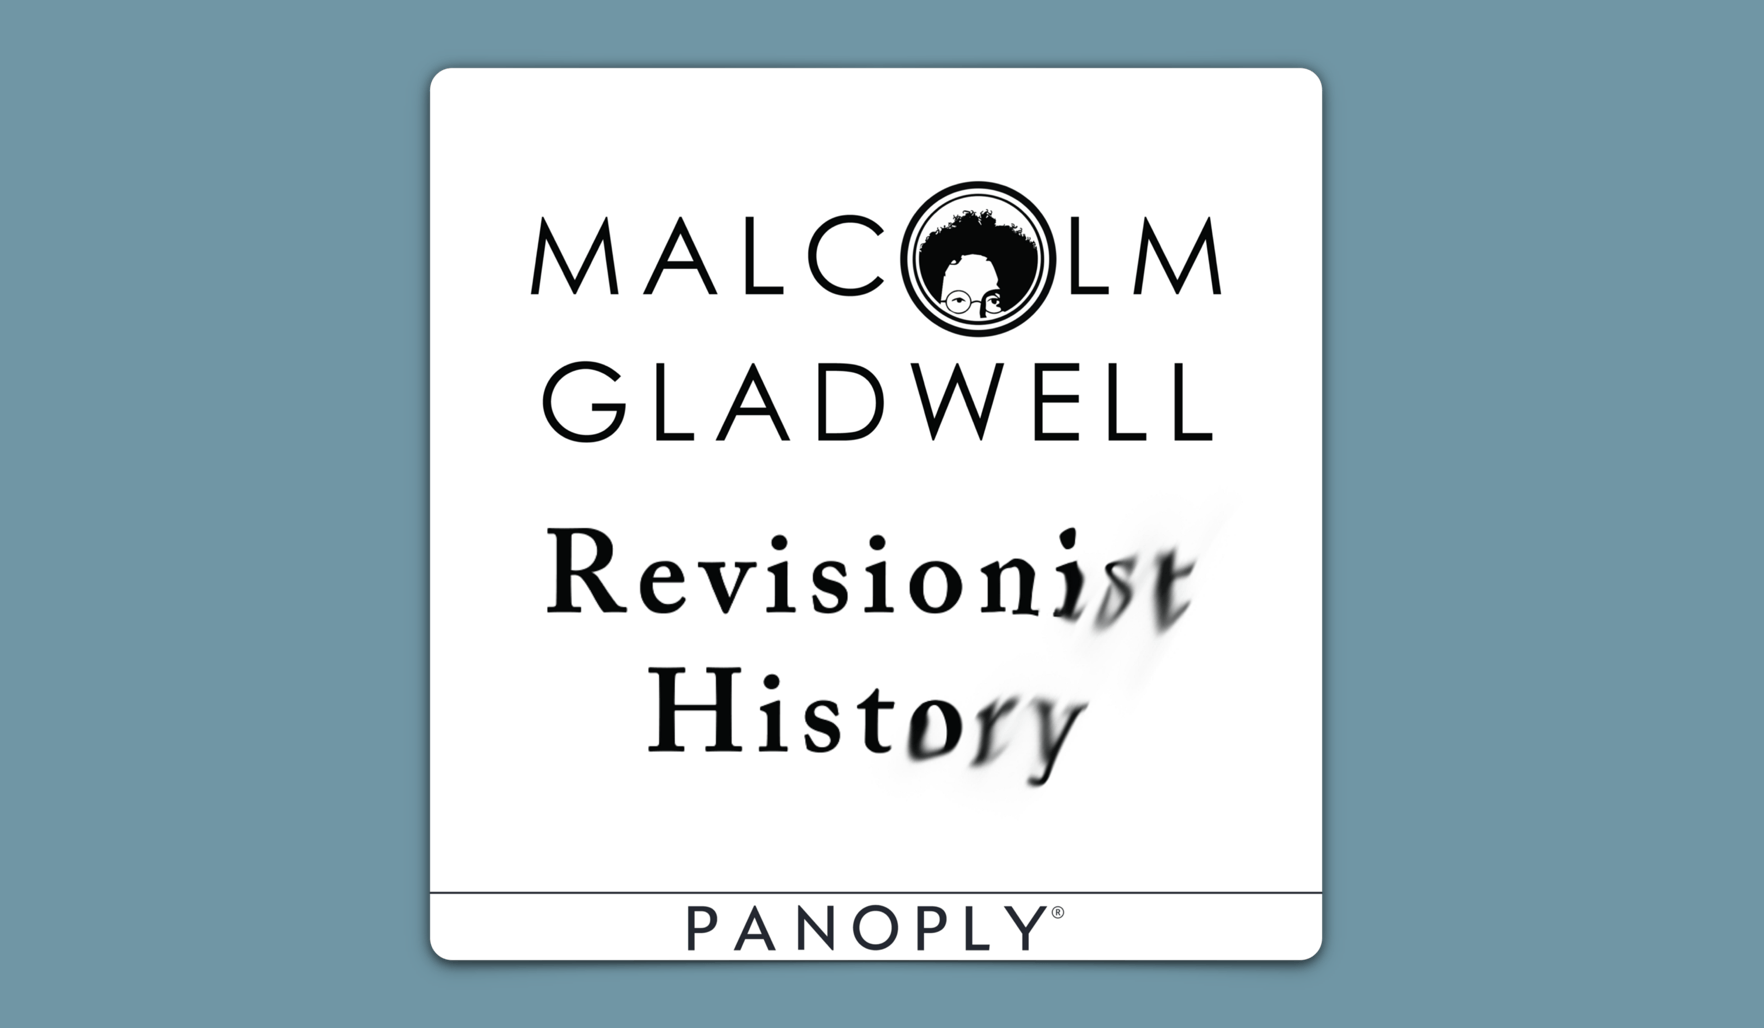 Malcolm Gladwell Revisionist History